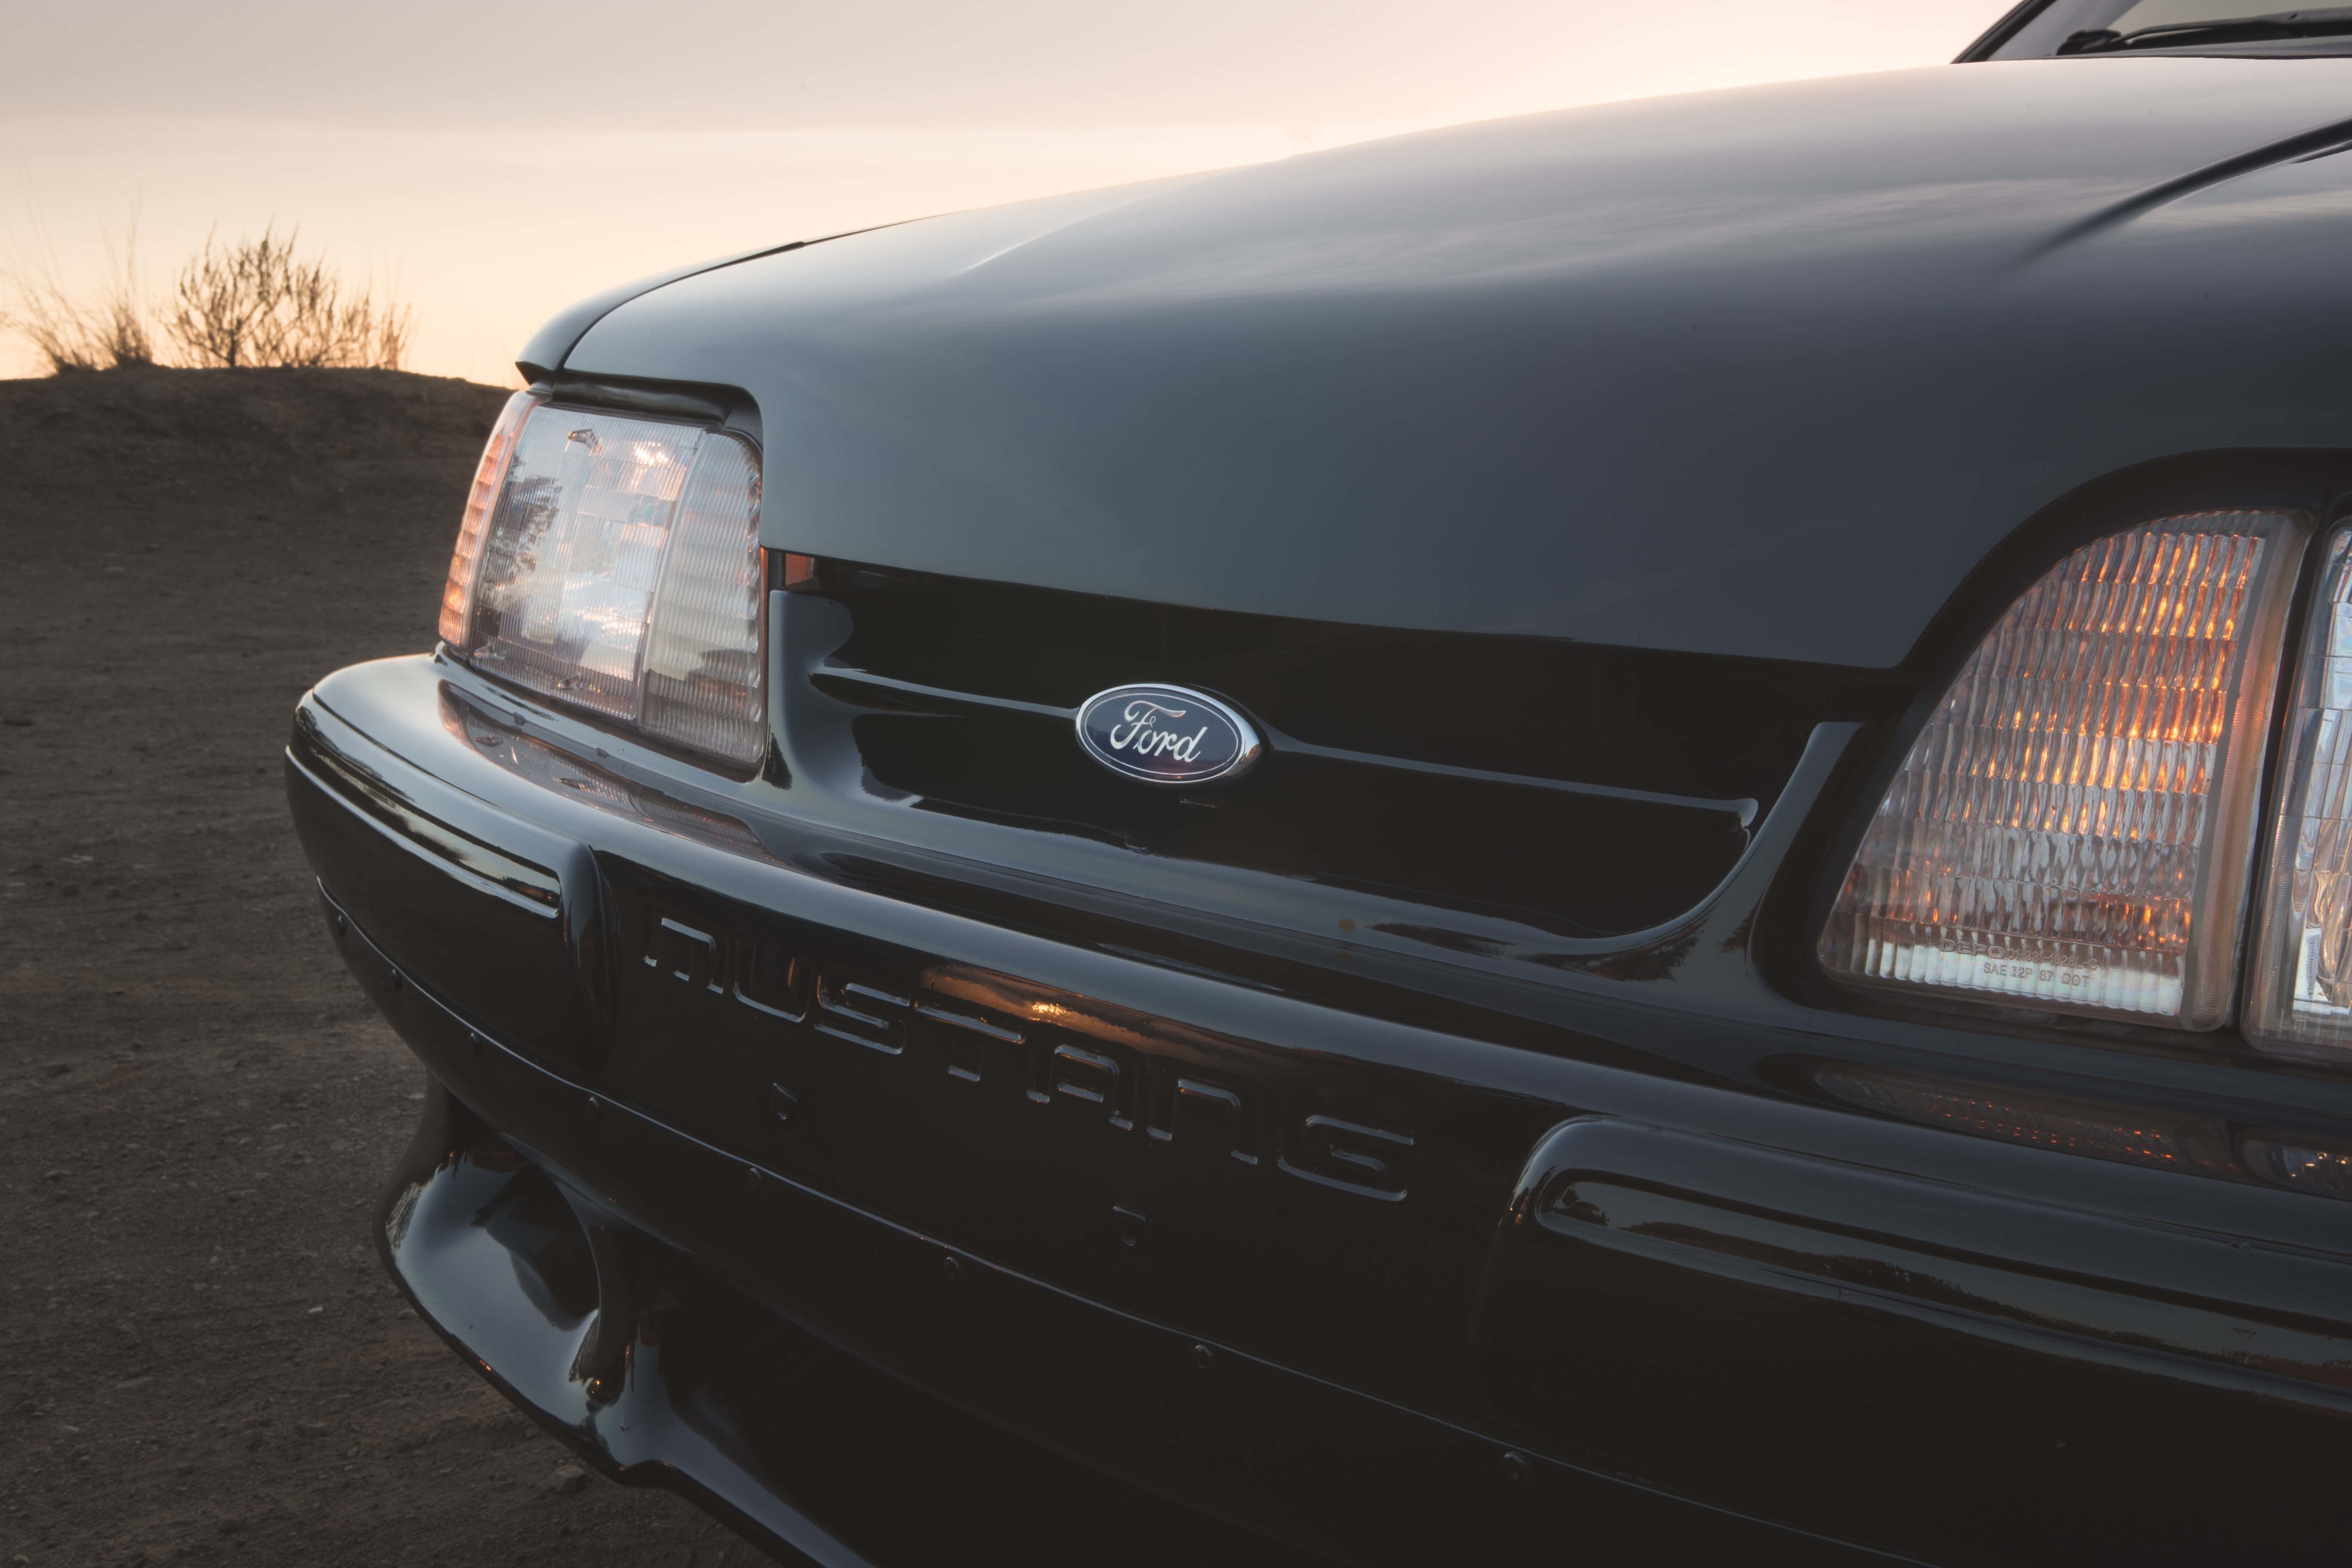 1988 Ford Mustang Front End